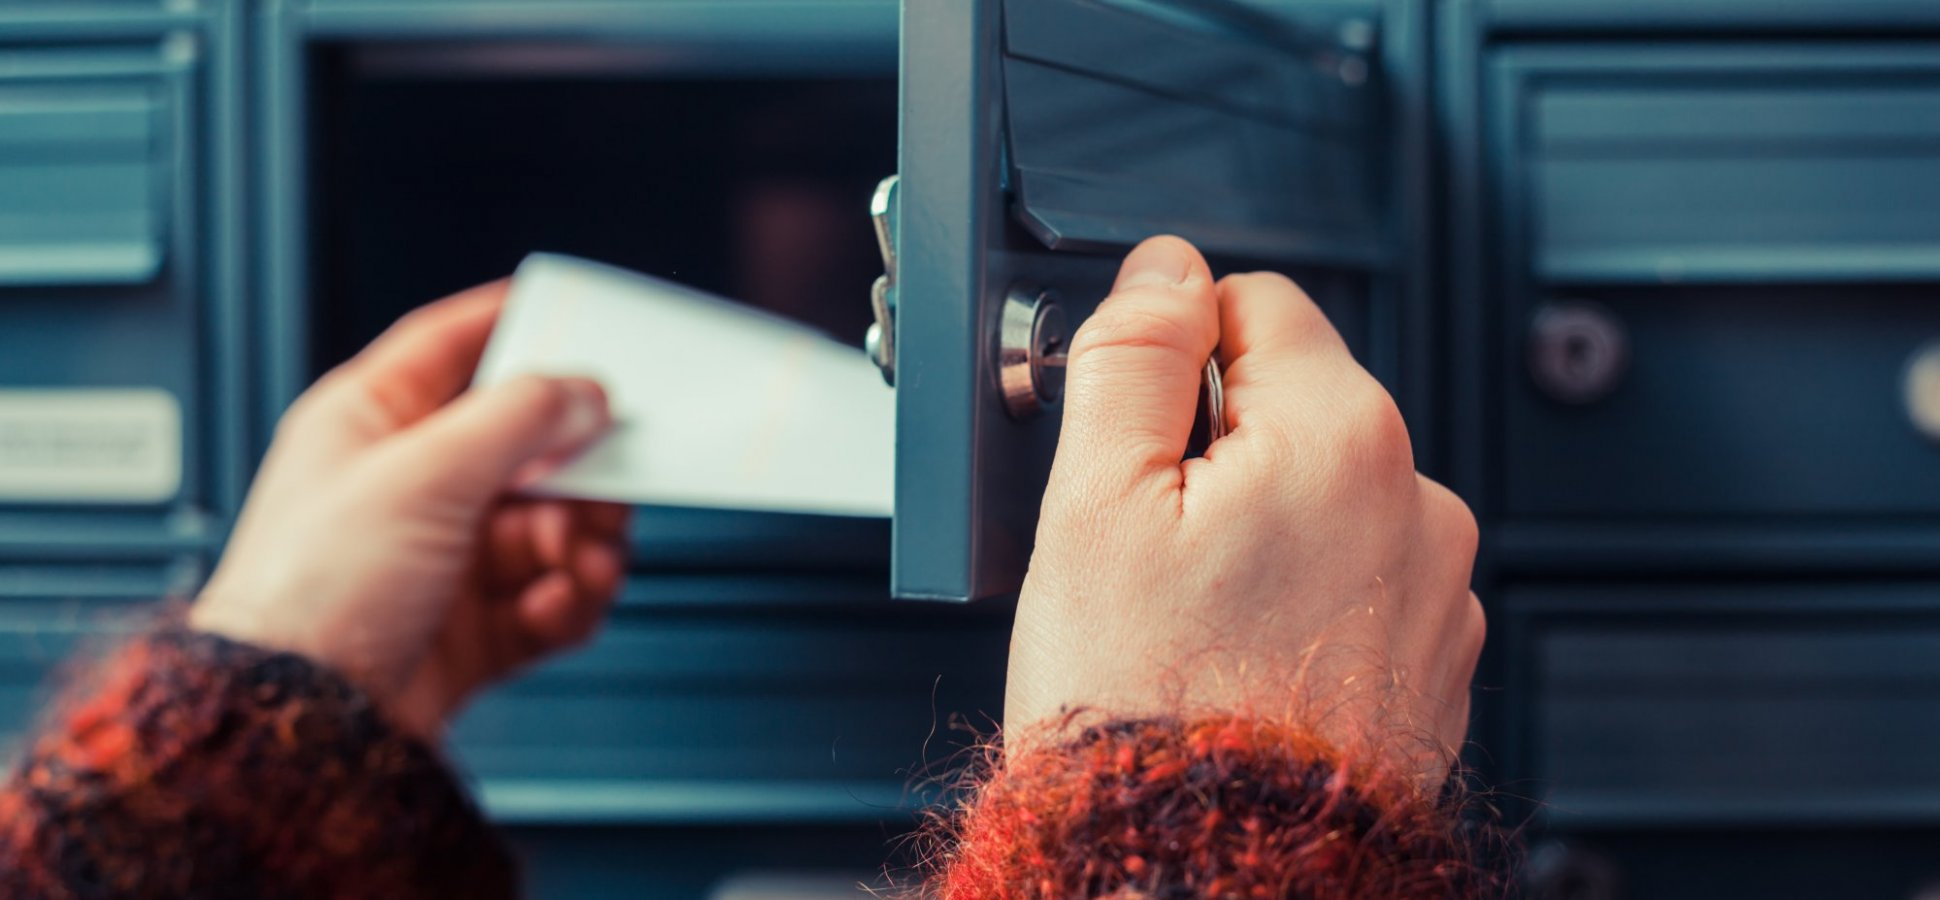 4 Unique Ways to Engage With Your Customers Via Snail Mail